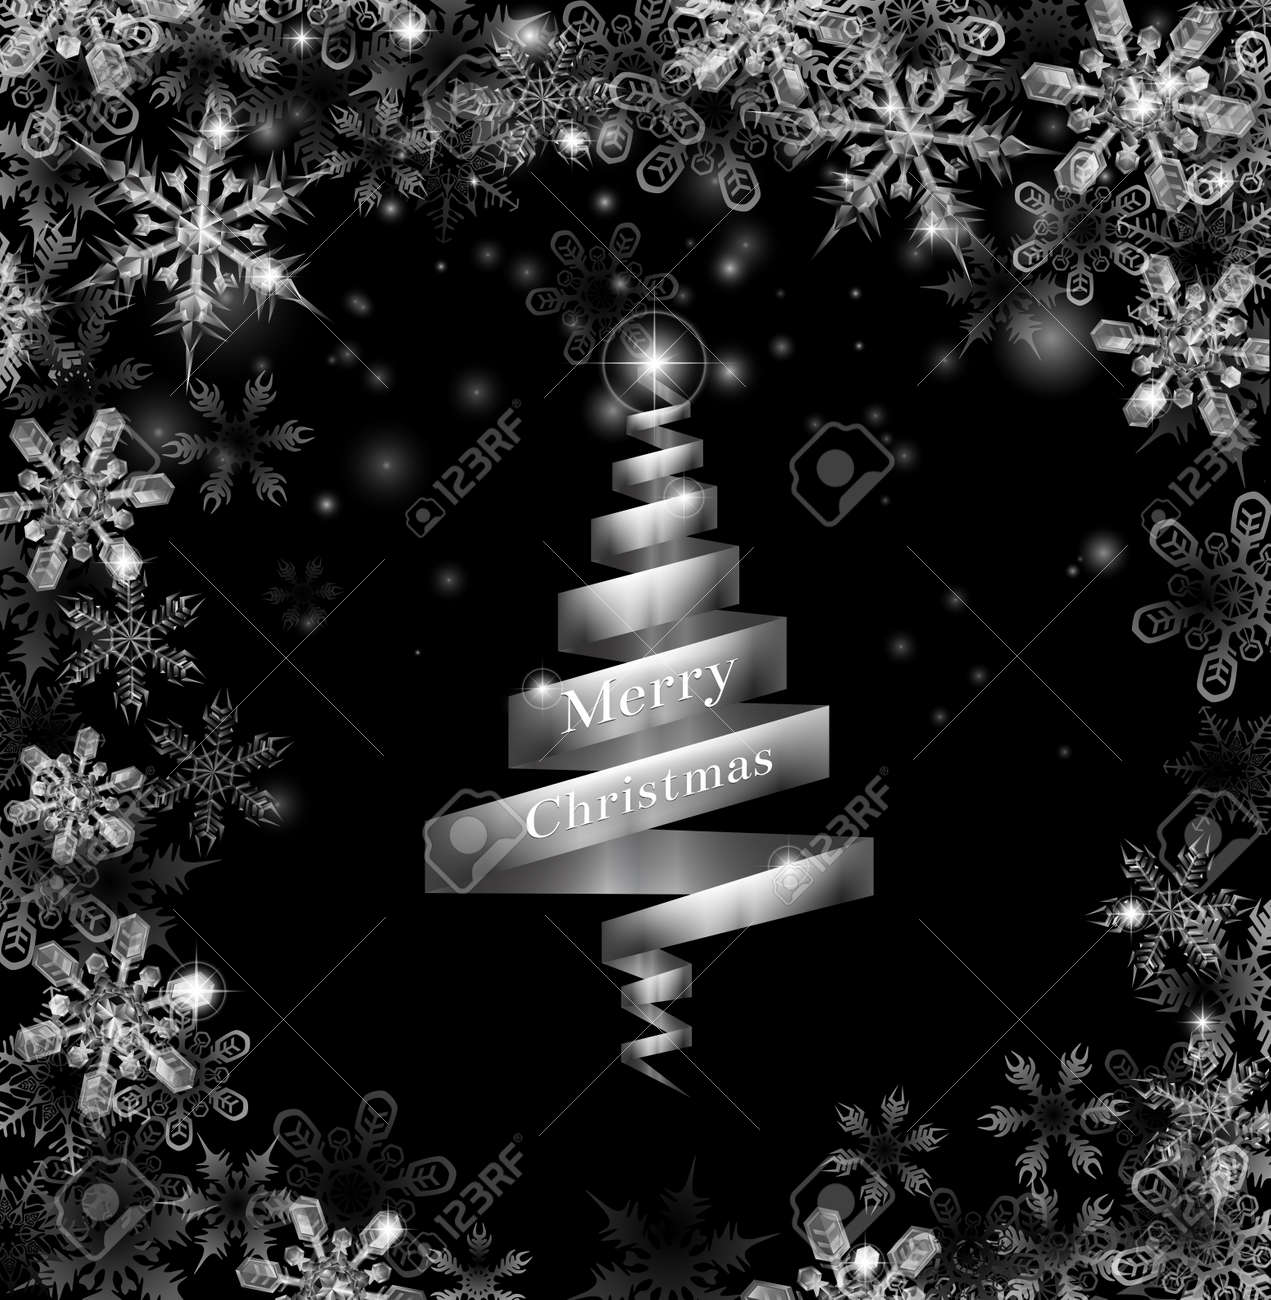 Christmas tree black and silver - Abstract Silver Ribbon Christmas Tree Illustration With Beautiful Snowflakes In A Border Round The Frame Stock